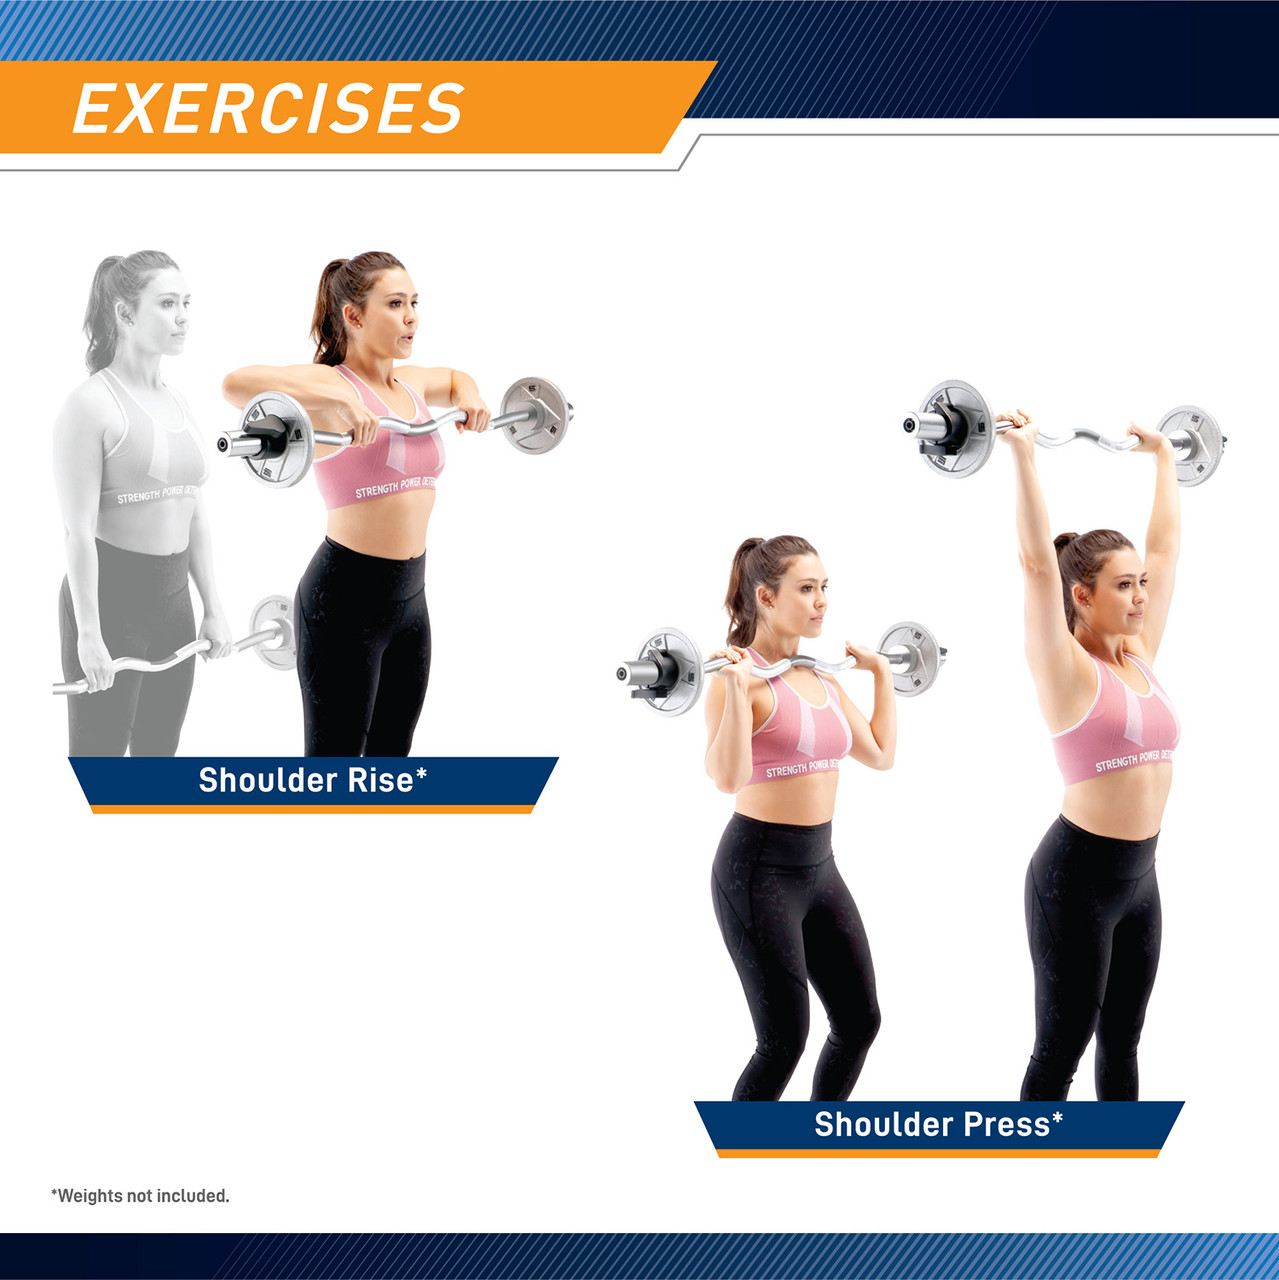 Get a full shoulder workout with this curl bar by adding shoulder raises to your routine. Shoulder raises target your shoulder muscles and some back muscles